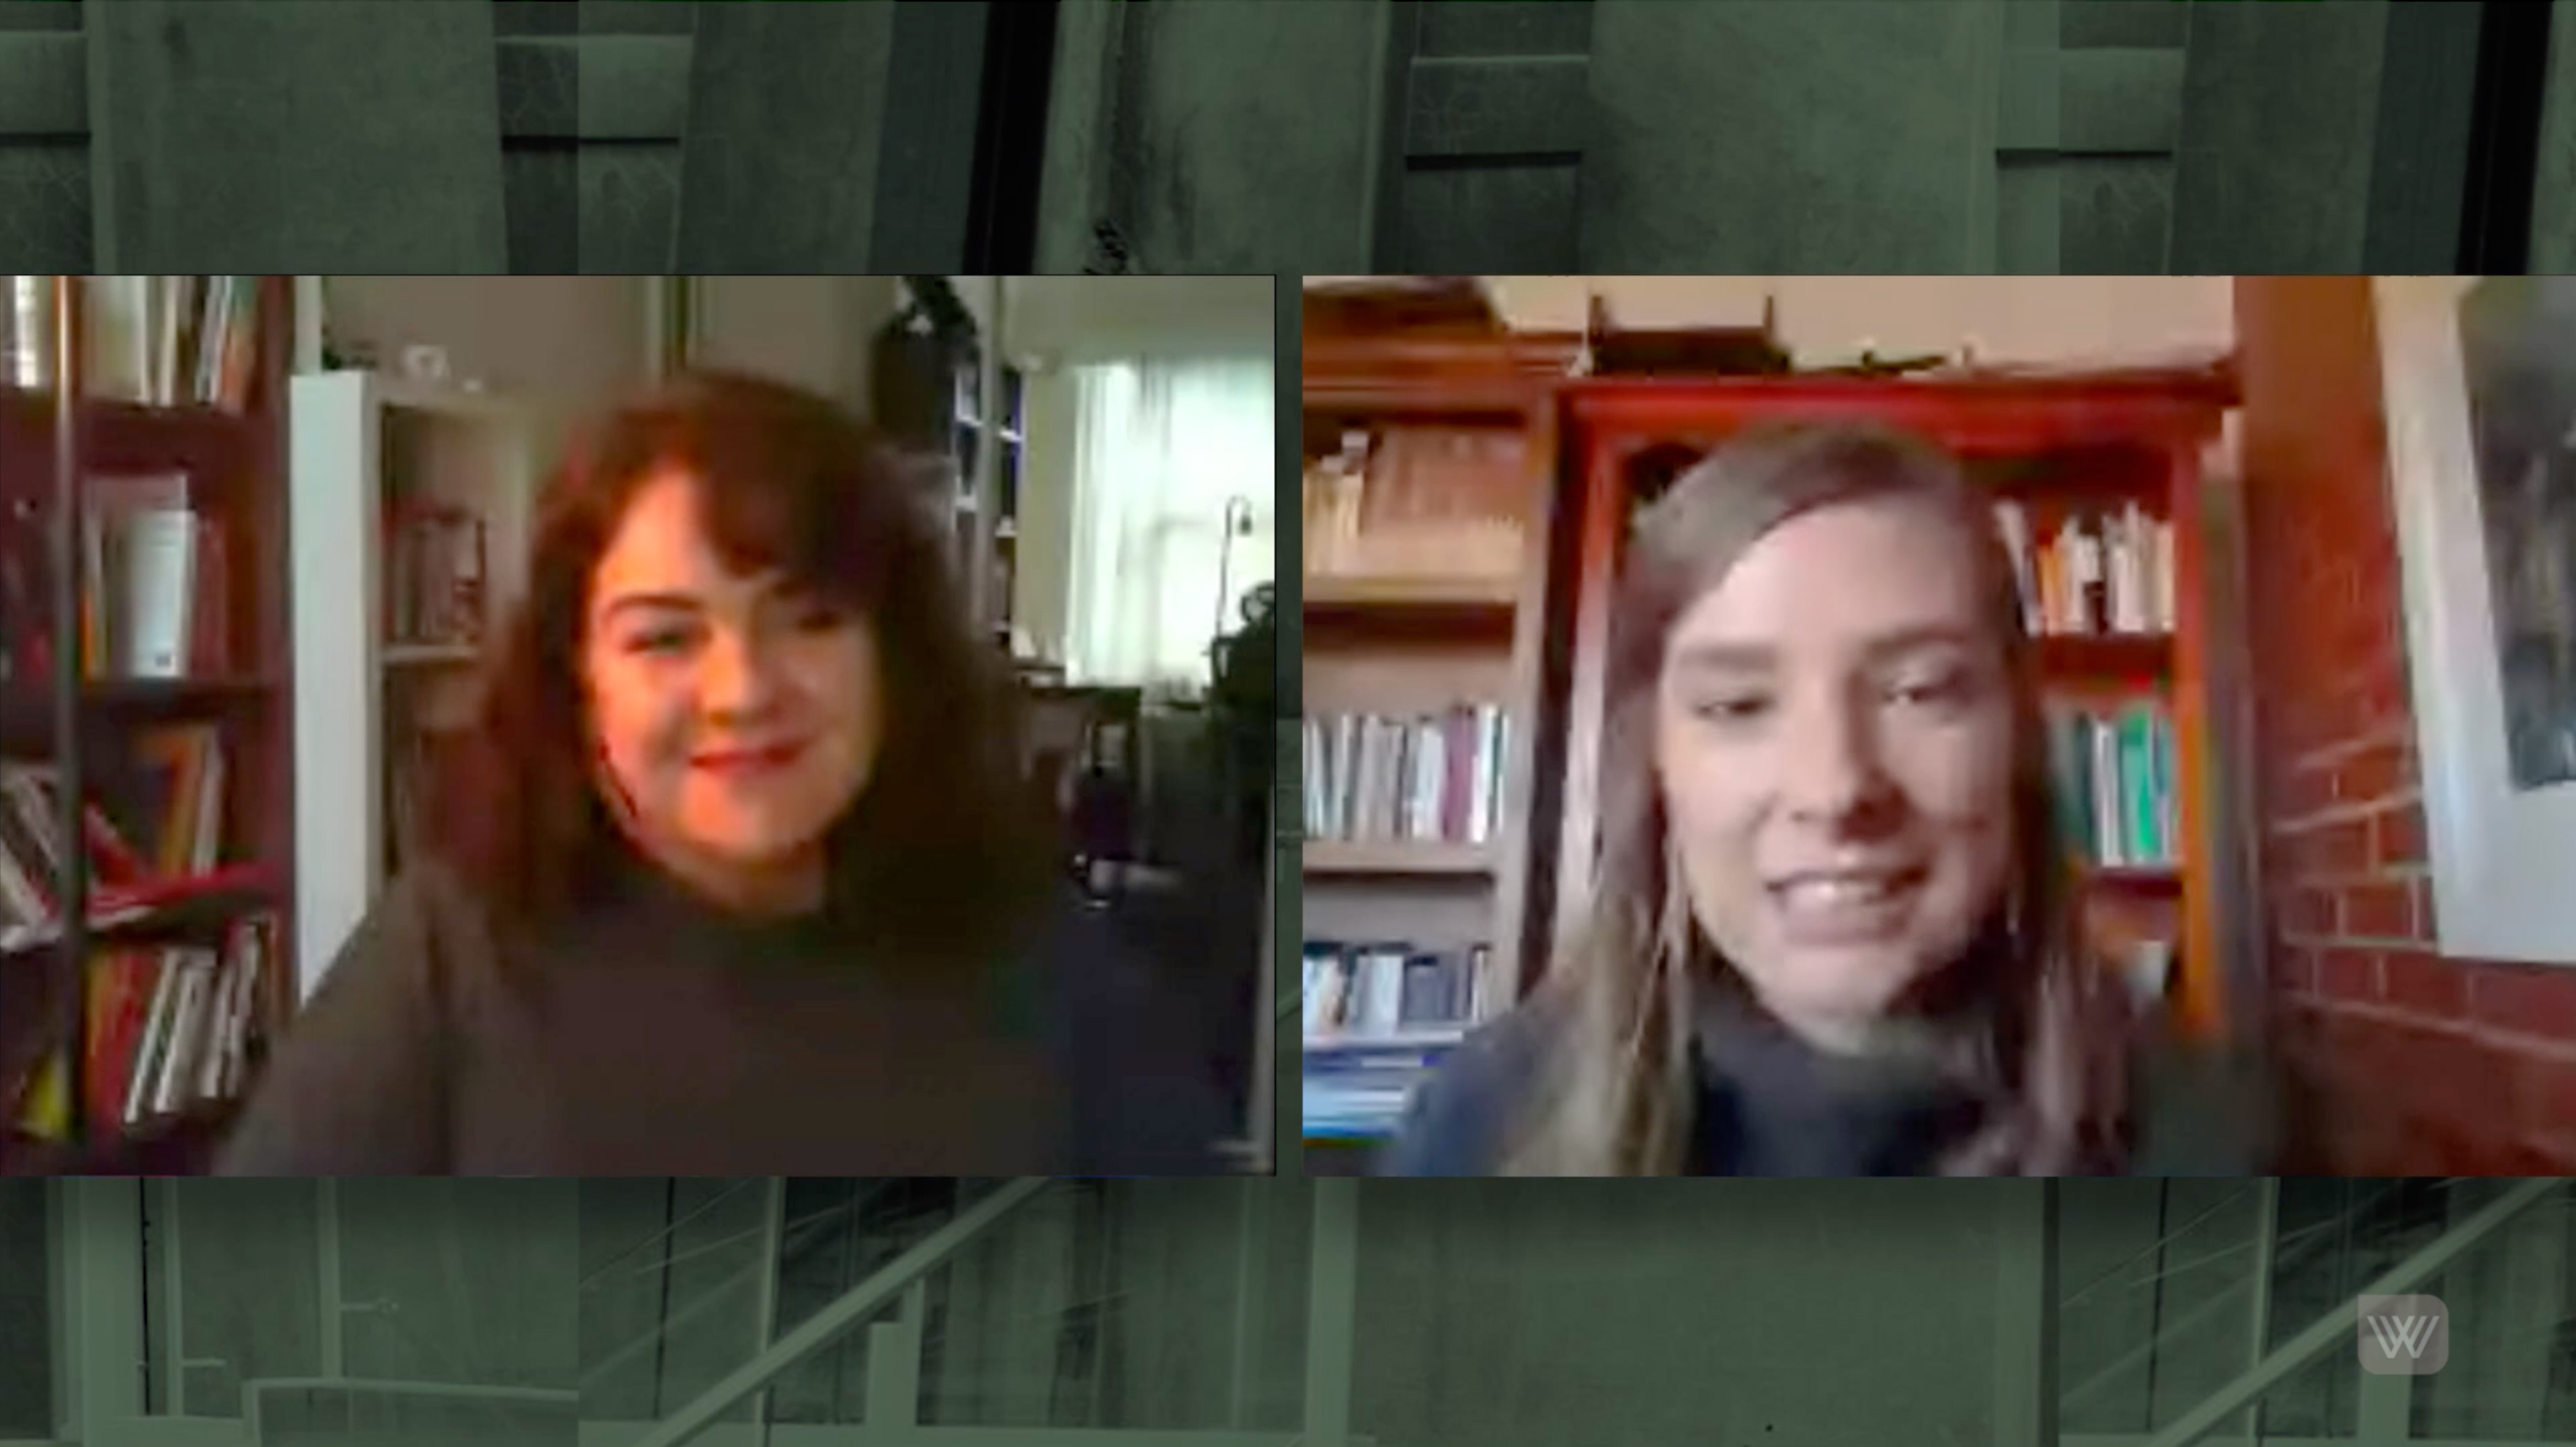 Screenshot of Alison Whittaker and Evelyn Araluen in conversation